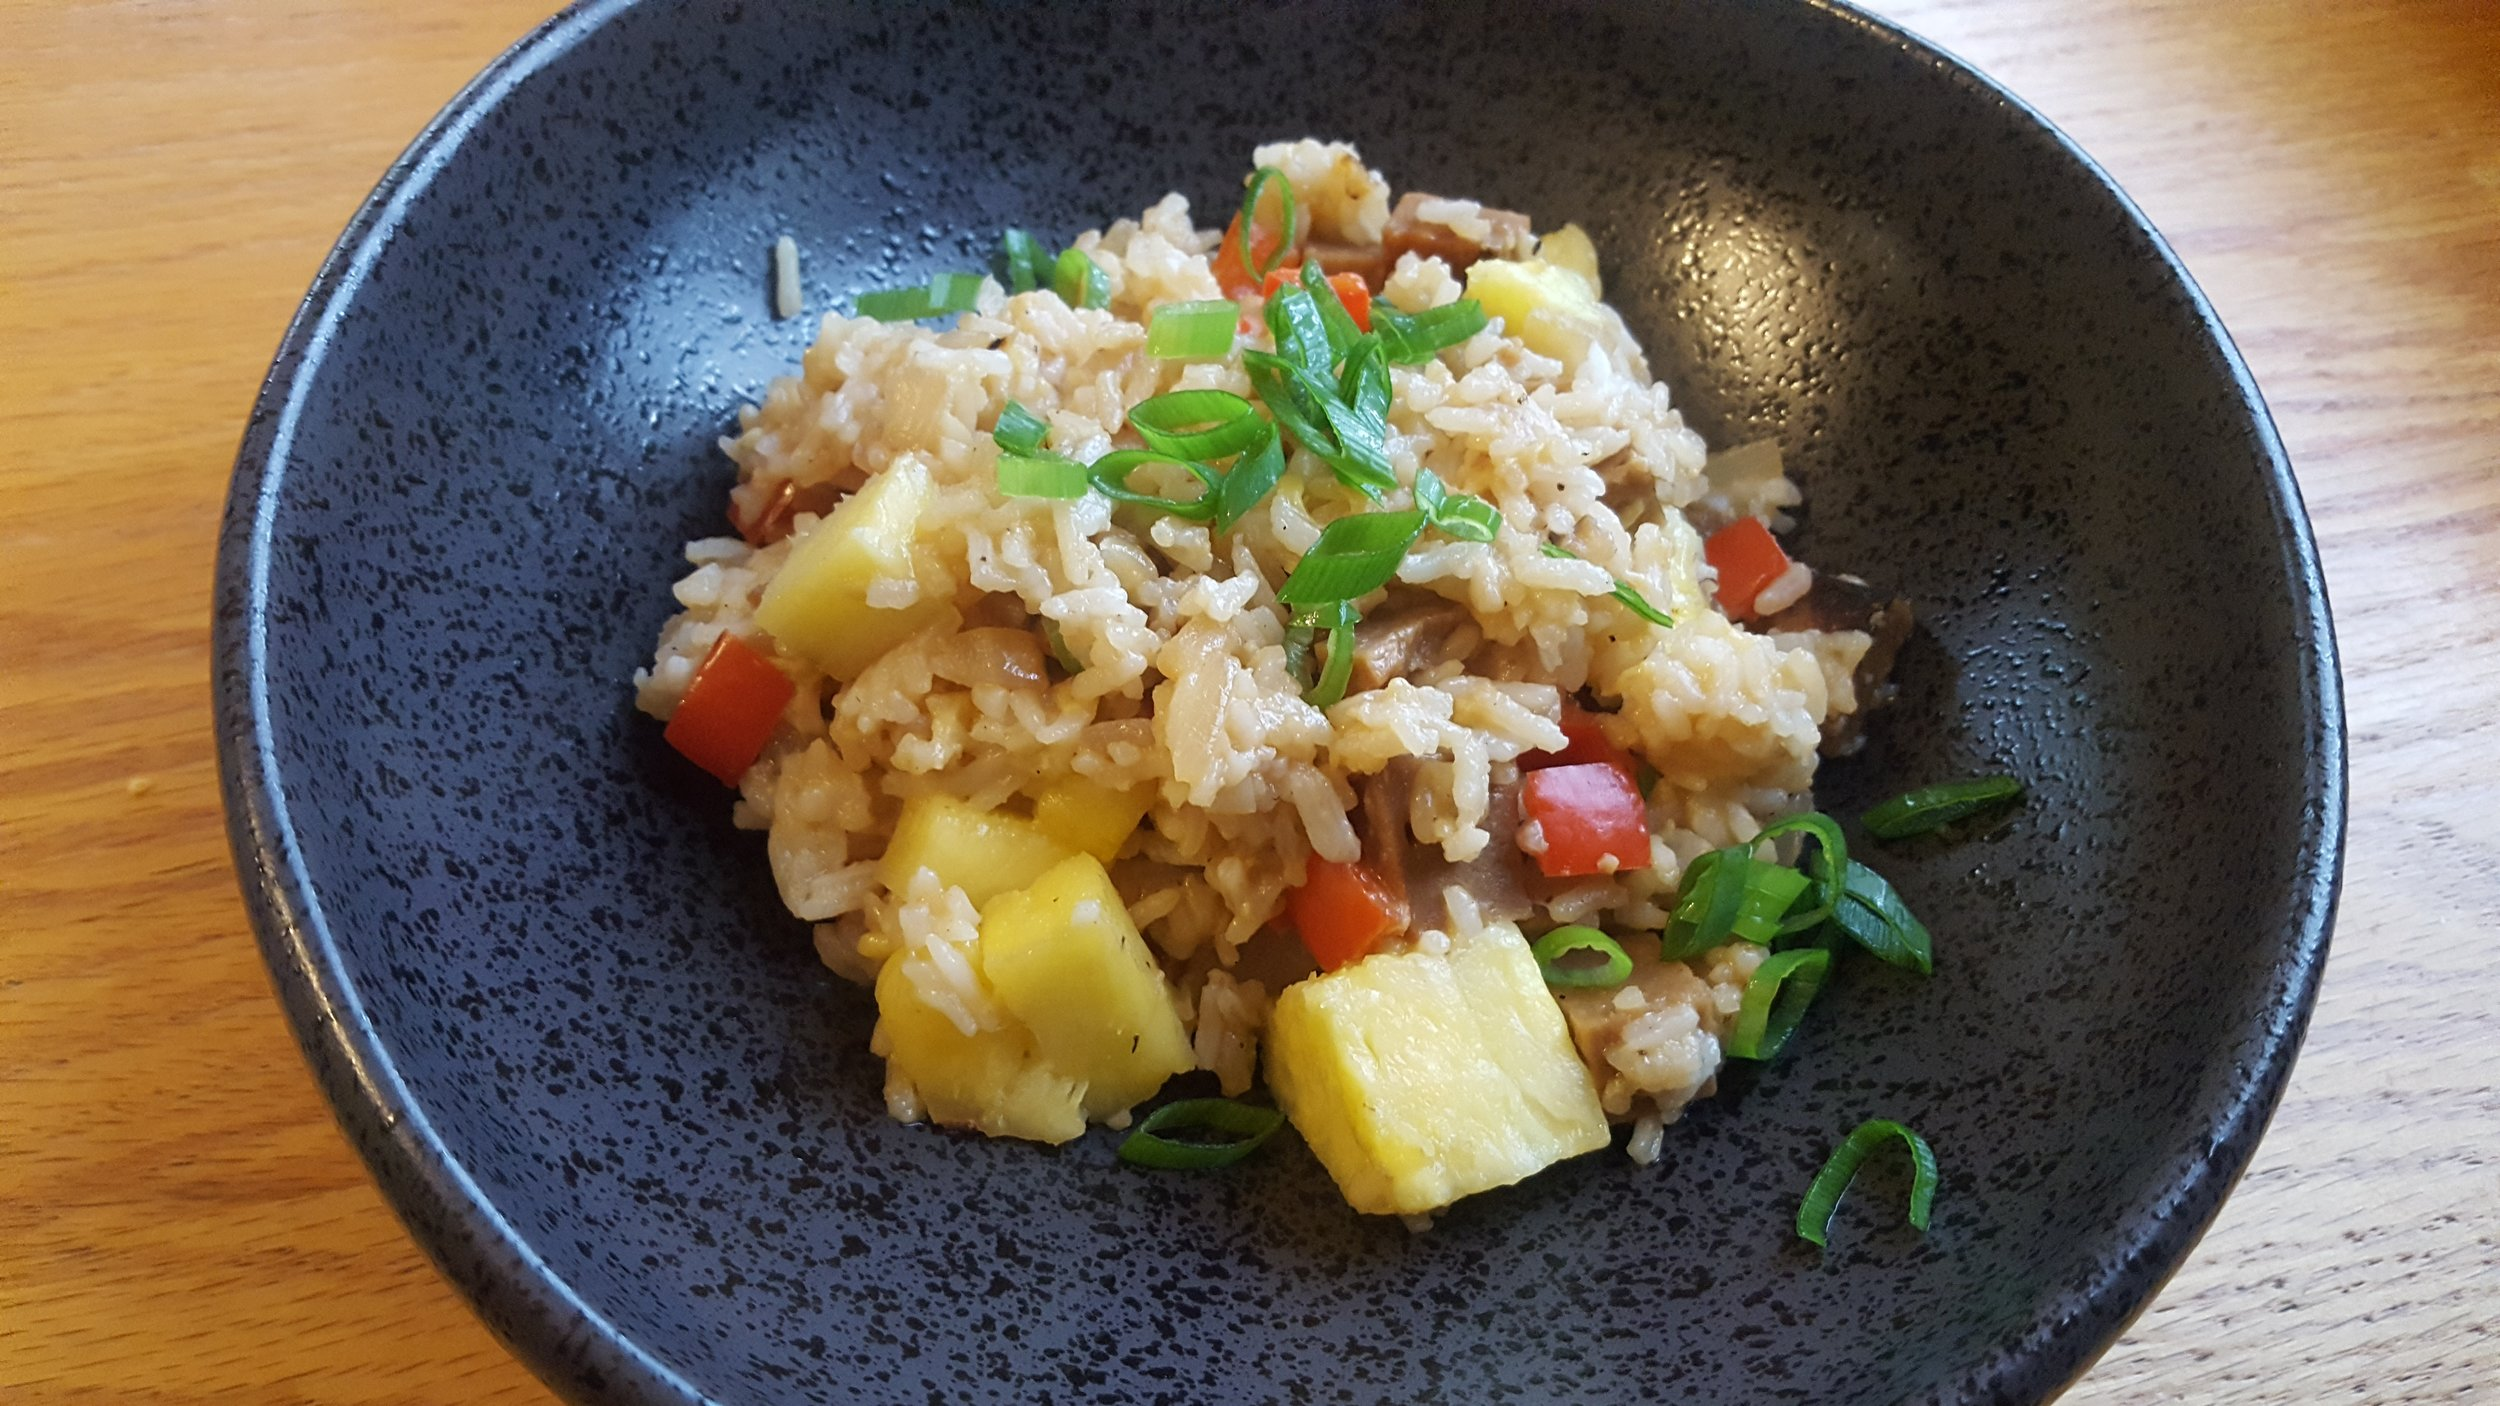 Hawaiian fried rice, vegan style